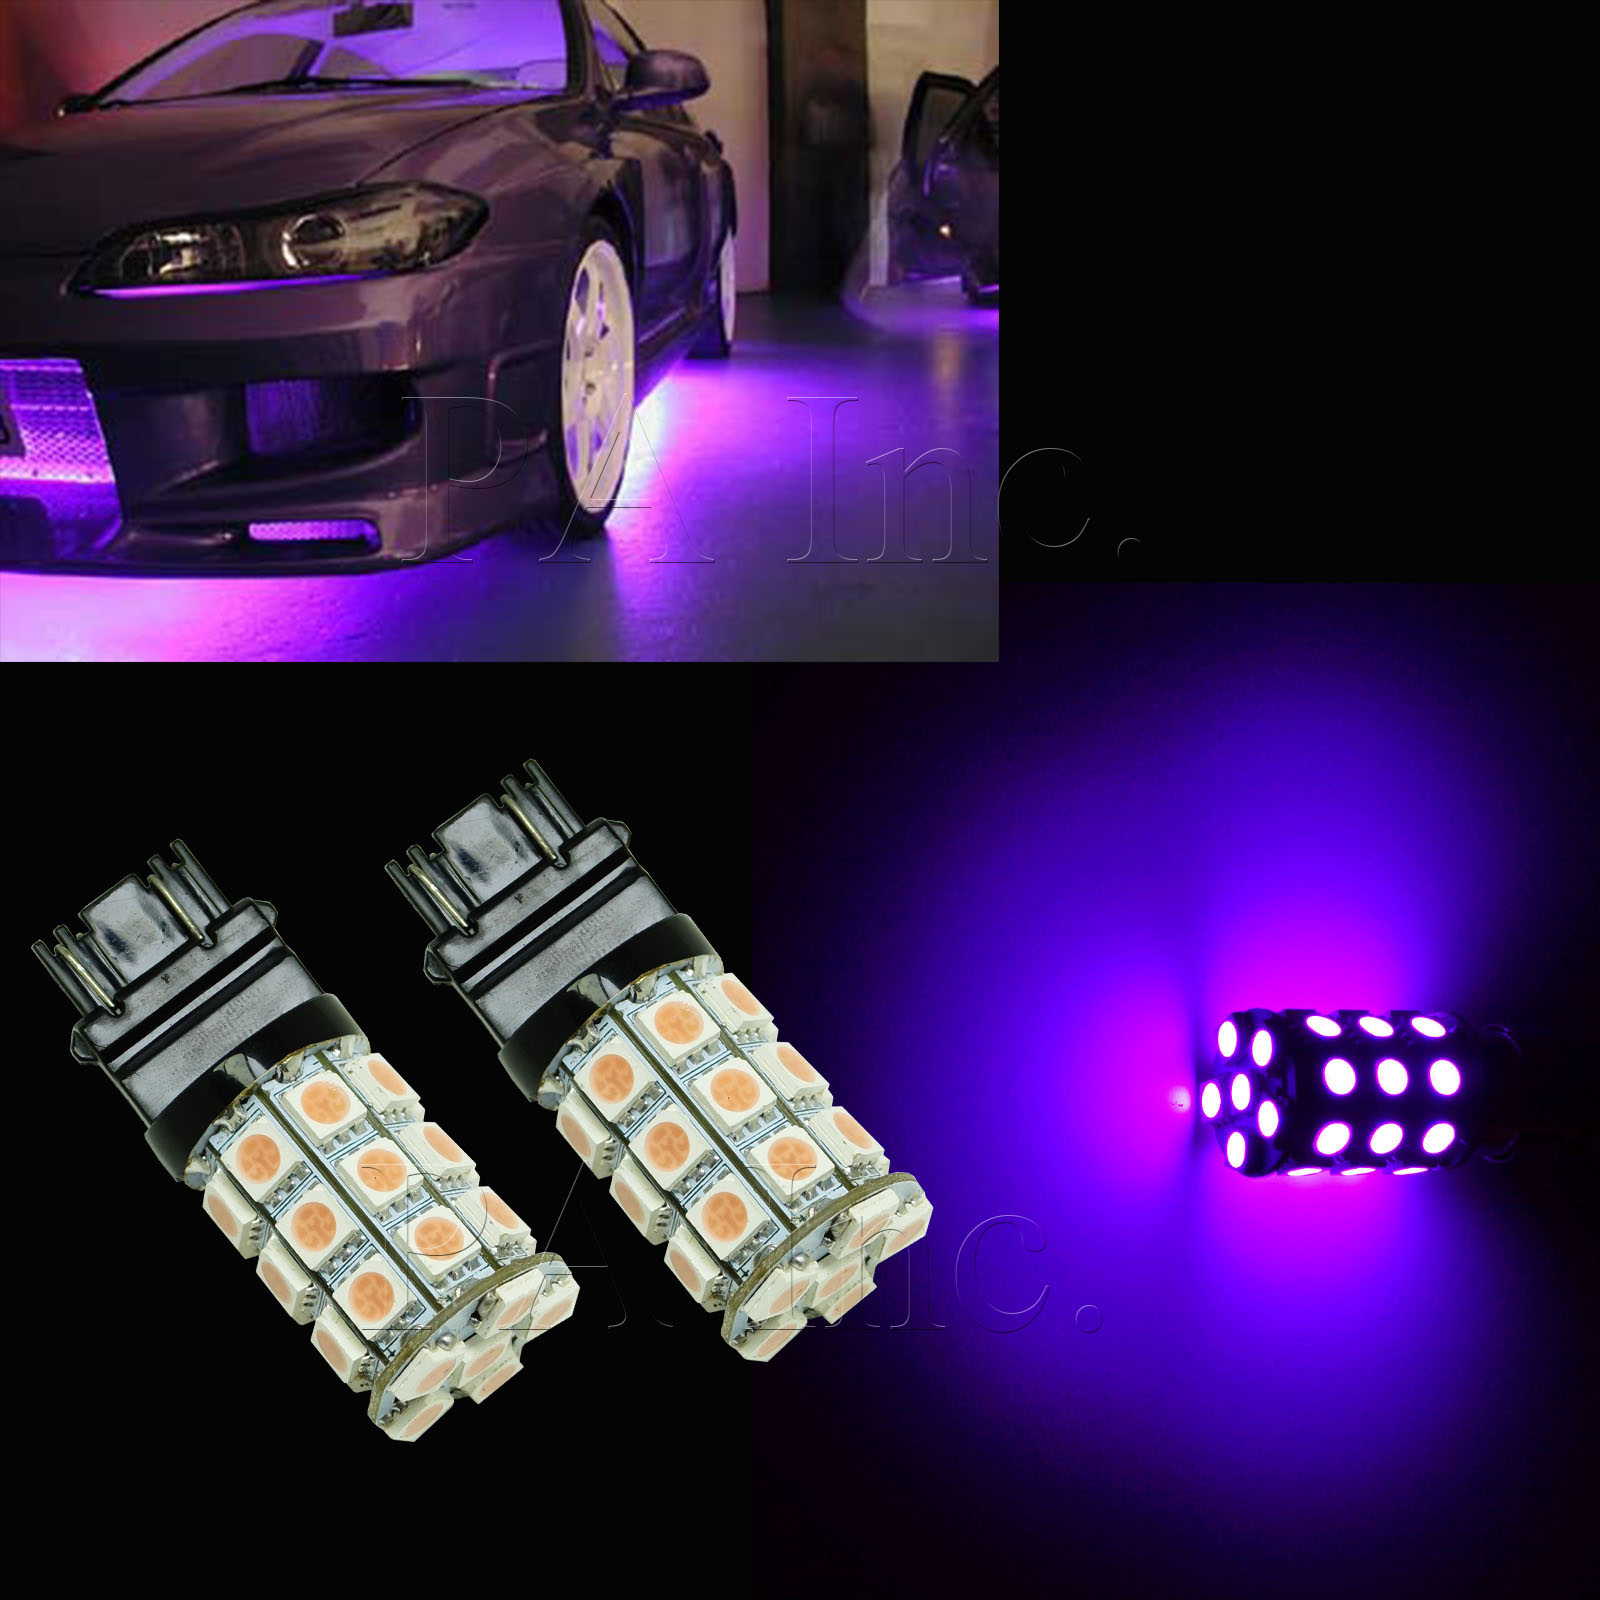 2x PURPLE 3157 30-SMD 5050 LED Car Brake Stop Light Bulbs DRL Lamp  Brightness P2 | eBay